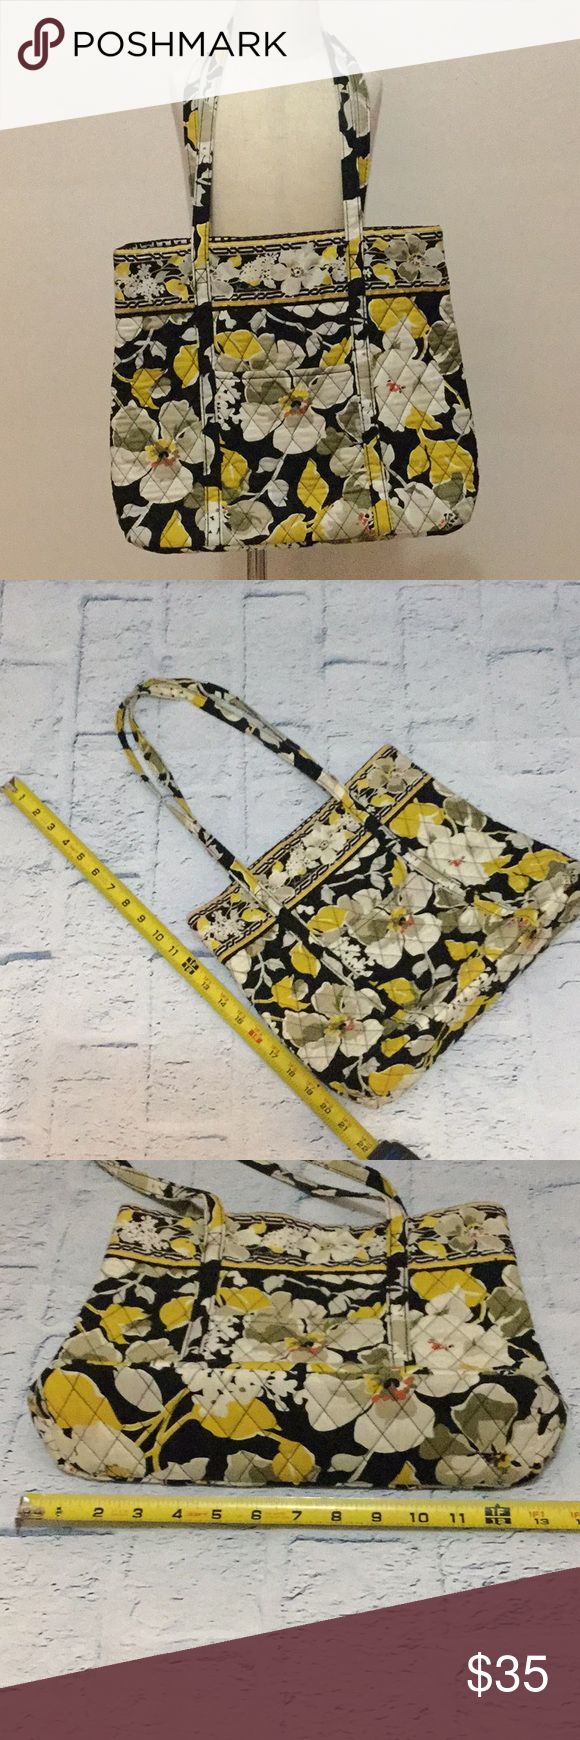 Vera Bradley Dogwood Tote Excellent used condition. Front pocket on outside, no inside pockets. Measurements in pics. Vera Bradley Bags Totes